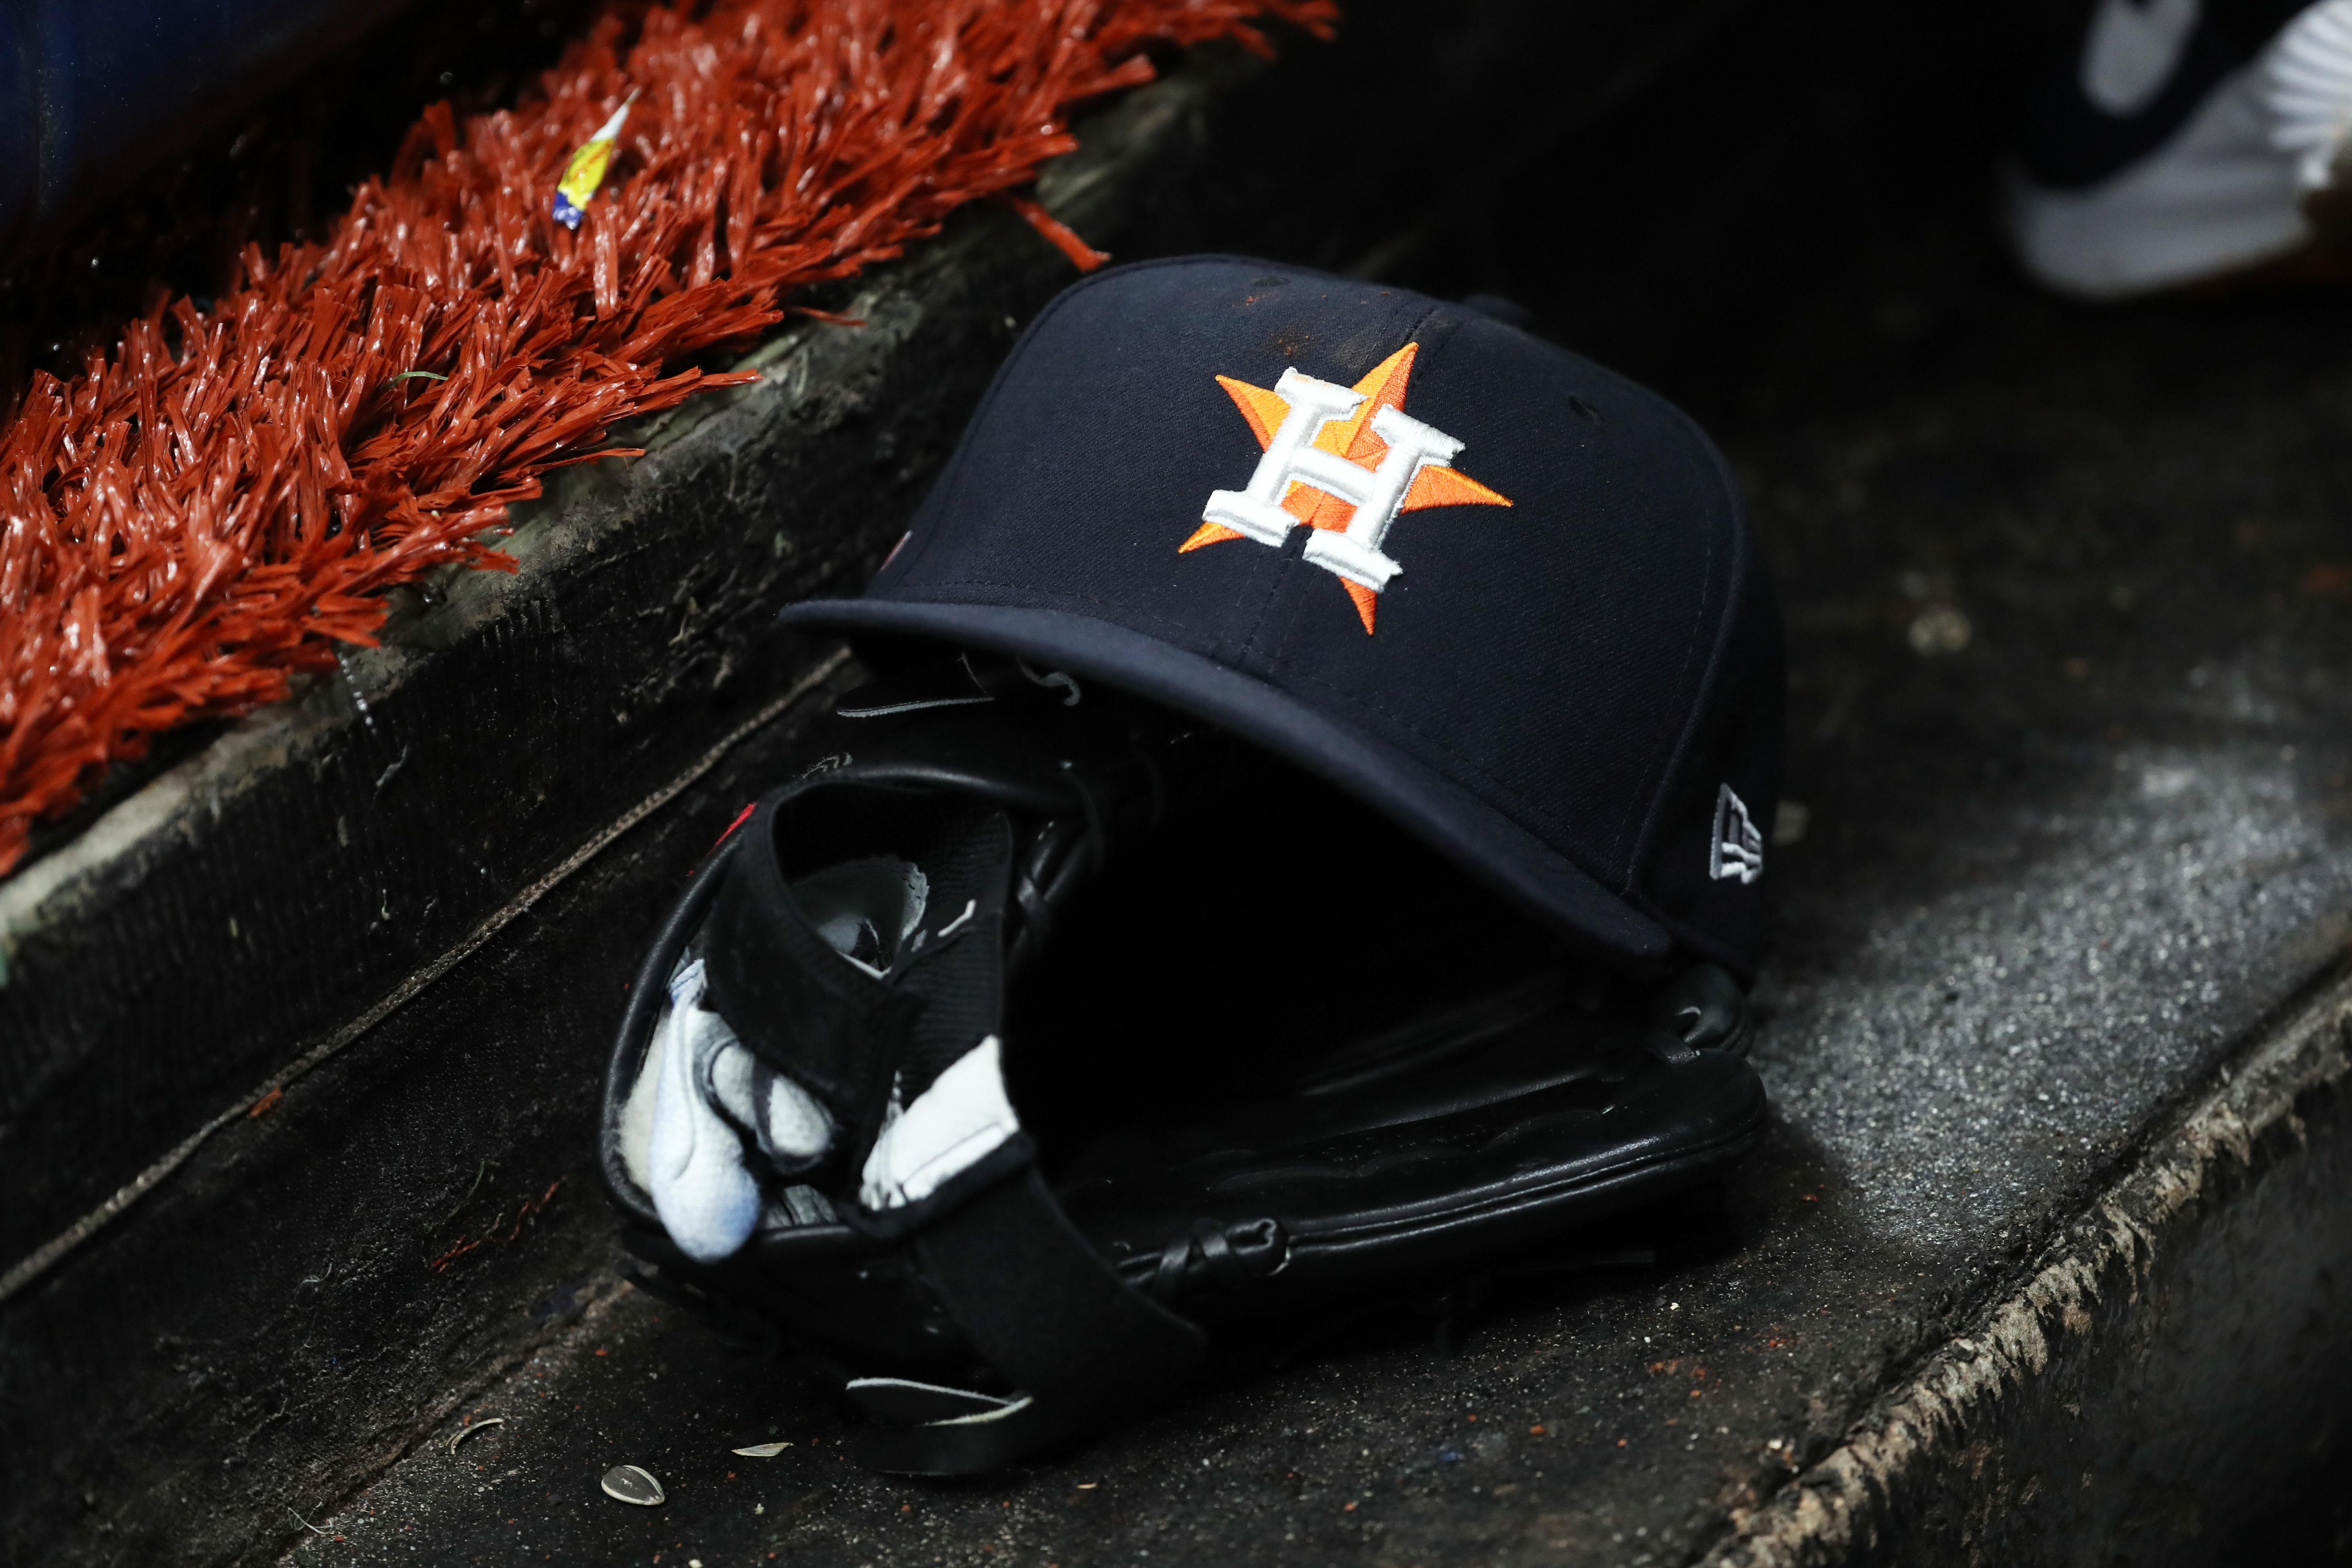 Astros fans grapple with 'tasteless' remark, specter of domestic violence